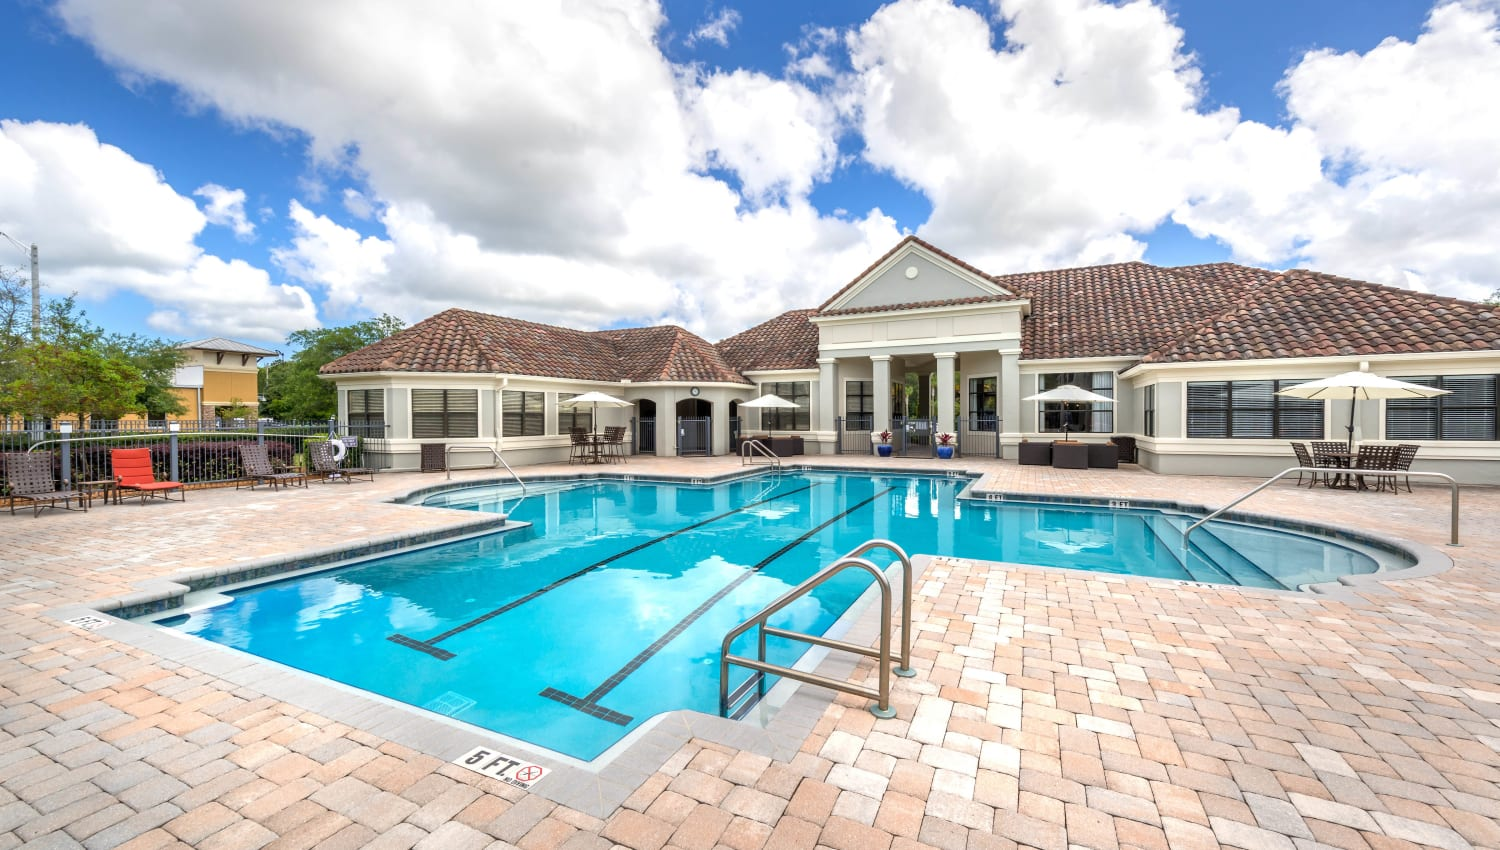 Fluffy clouds above the pool on a beautiful day at Mirador & Stovall at River City in Jacksonville, Florida